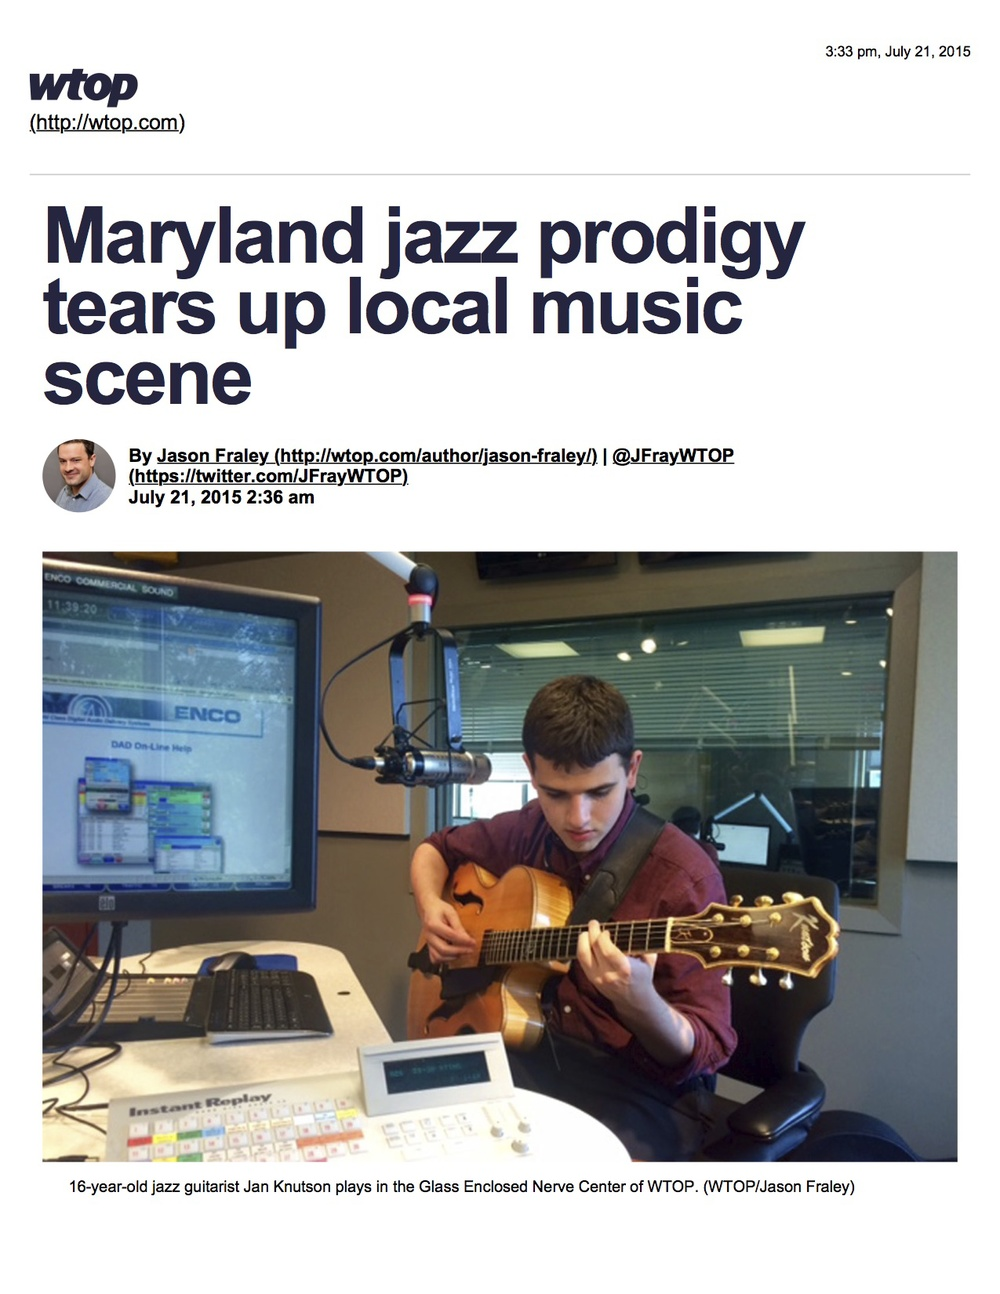 Maryland jazz prodigy tears up local music scene - WTOP.jpg